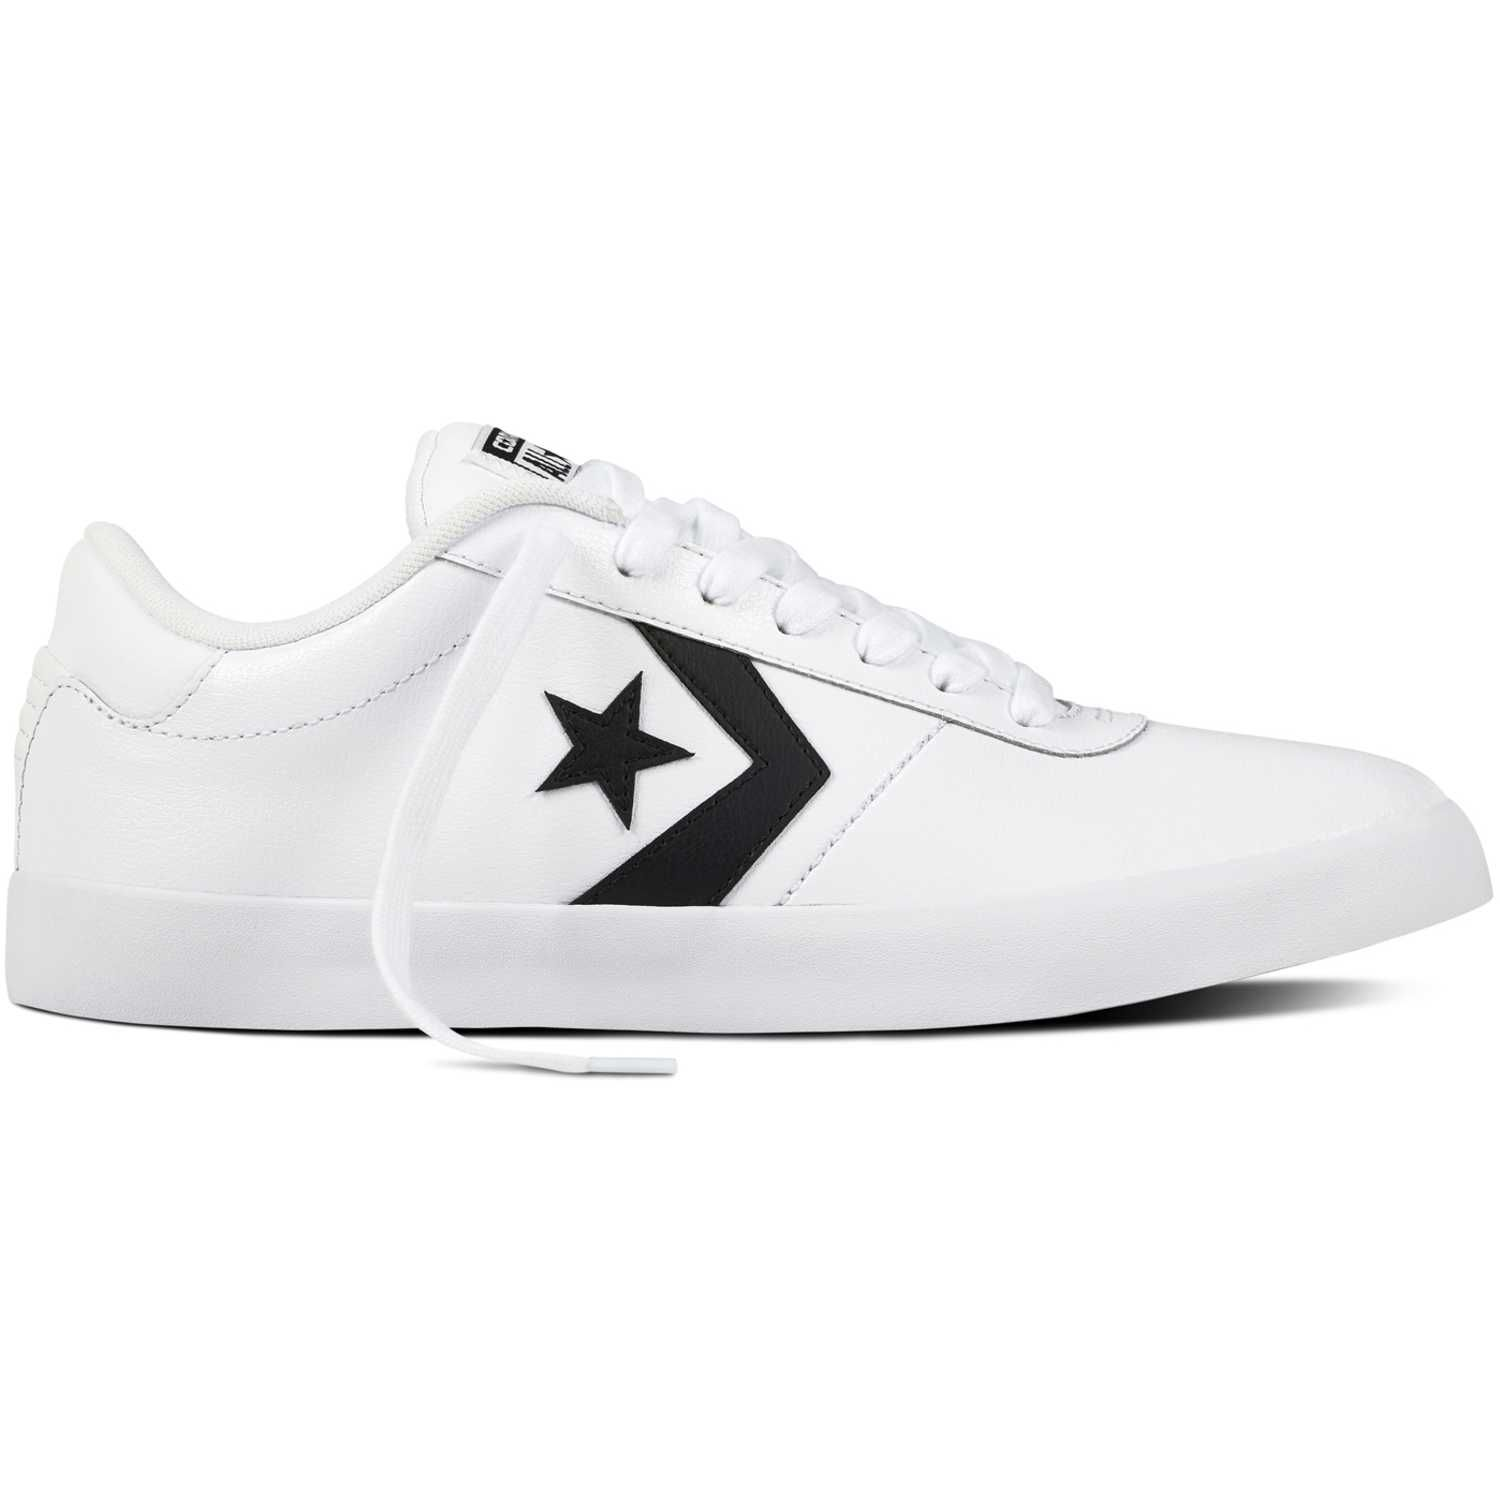 Converse De HombreZapatos En Point Leather Zapatilla Star 2019 WeEHIY29bD